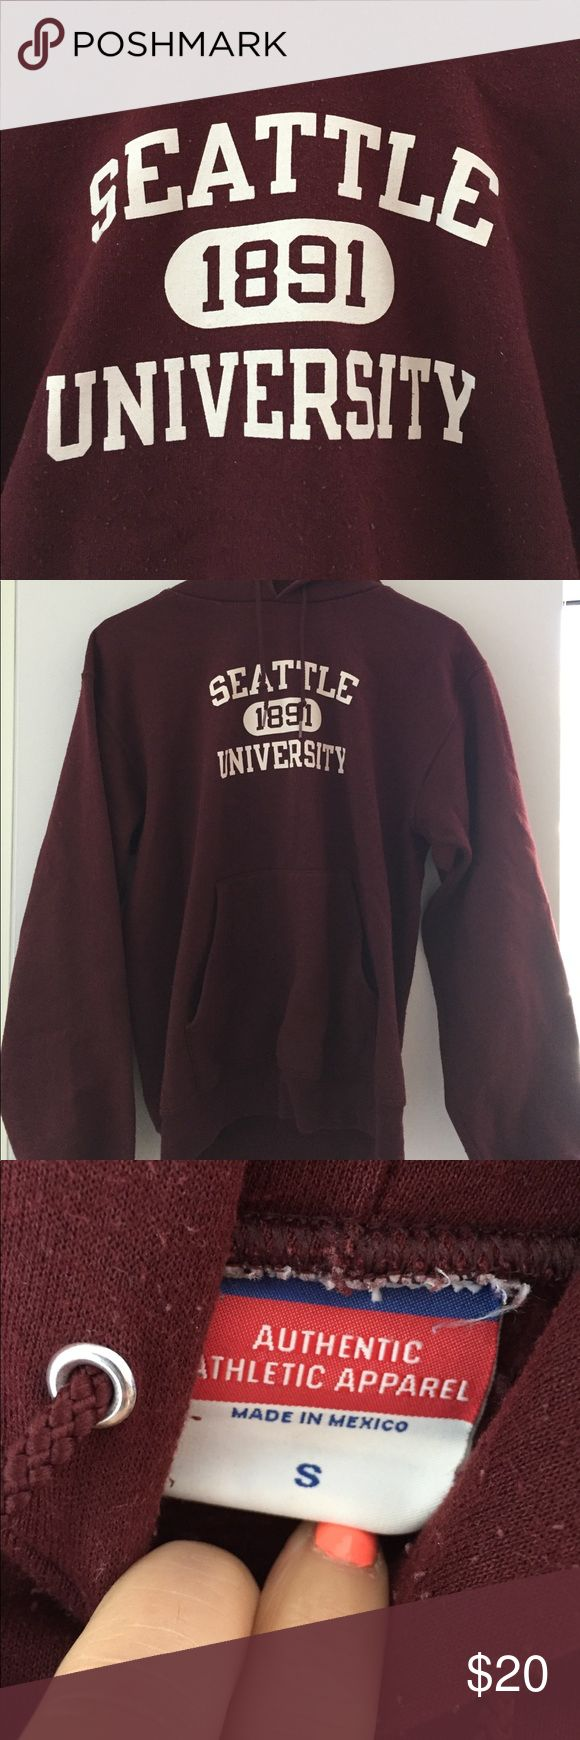 Seattle University maroon sweatshirt This sweatshirt has pilling throughout. It's been sitting in my closet since college, and it's time to say goodbye! It's ready for some new and fun college times! SU Seattle U Champion Tops Sweatshirts & Hoodies